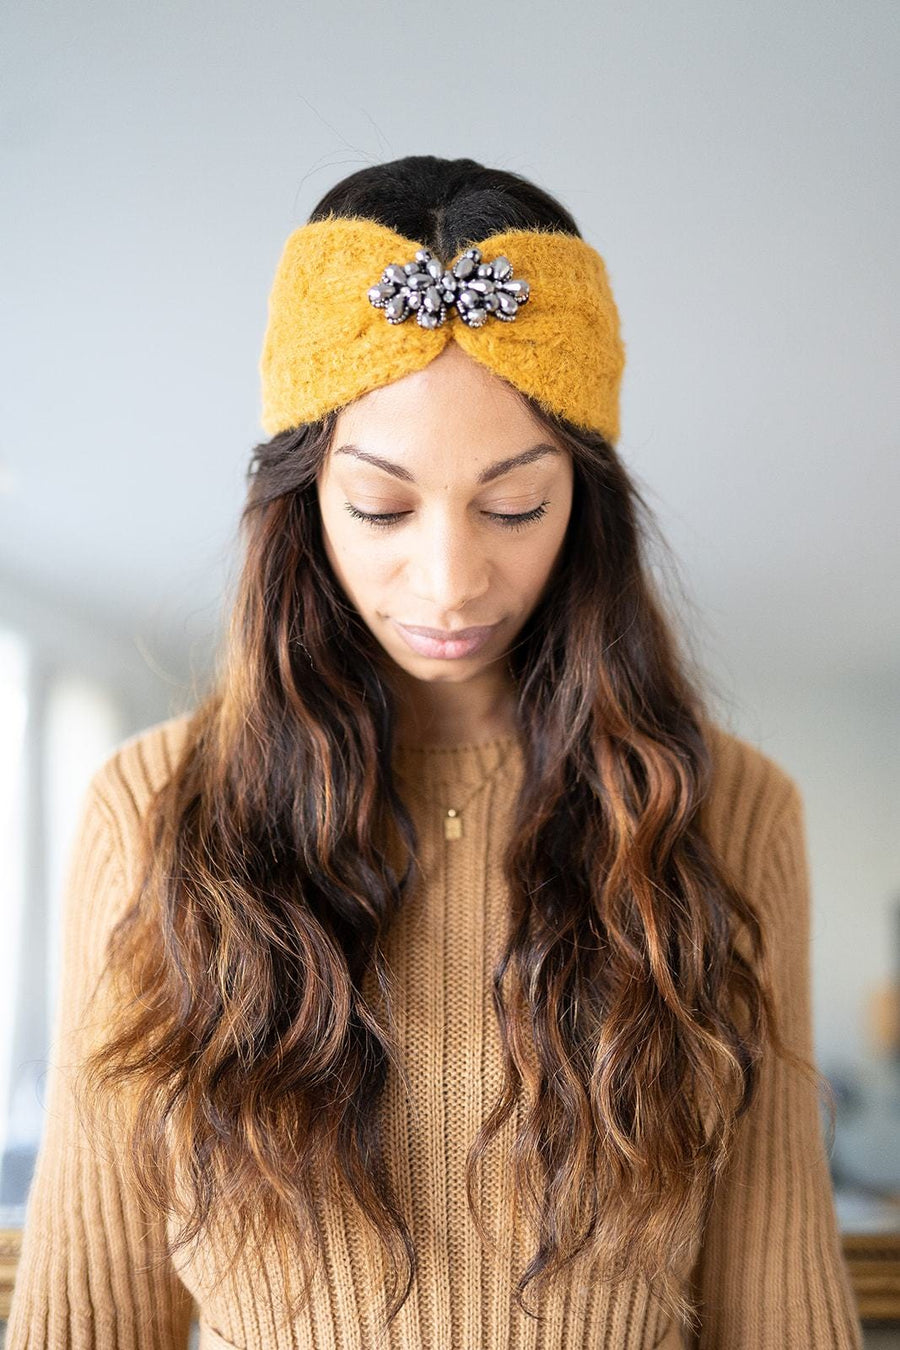 Tina knit Headband